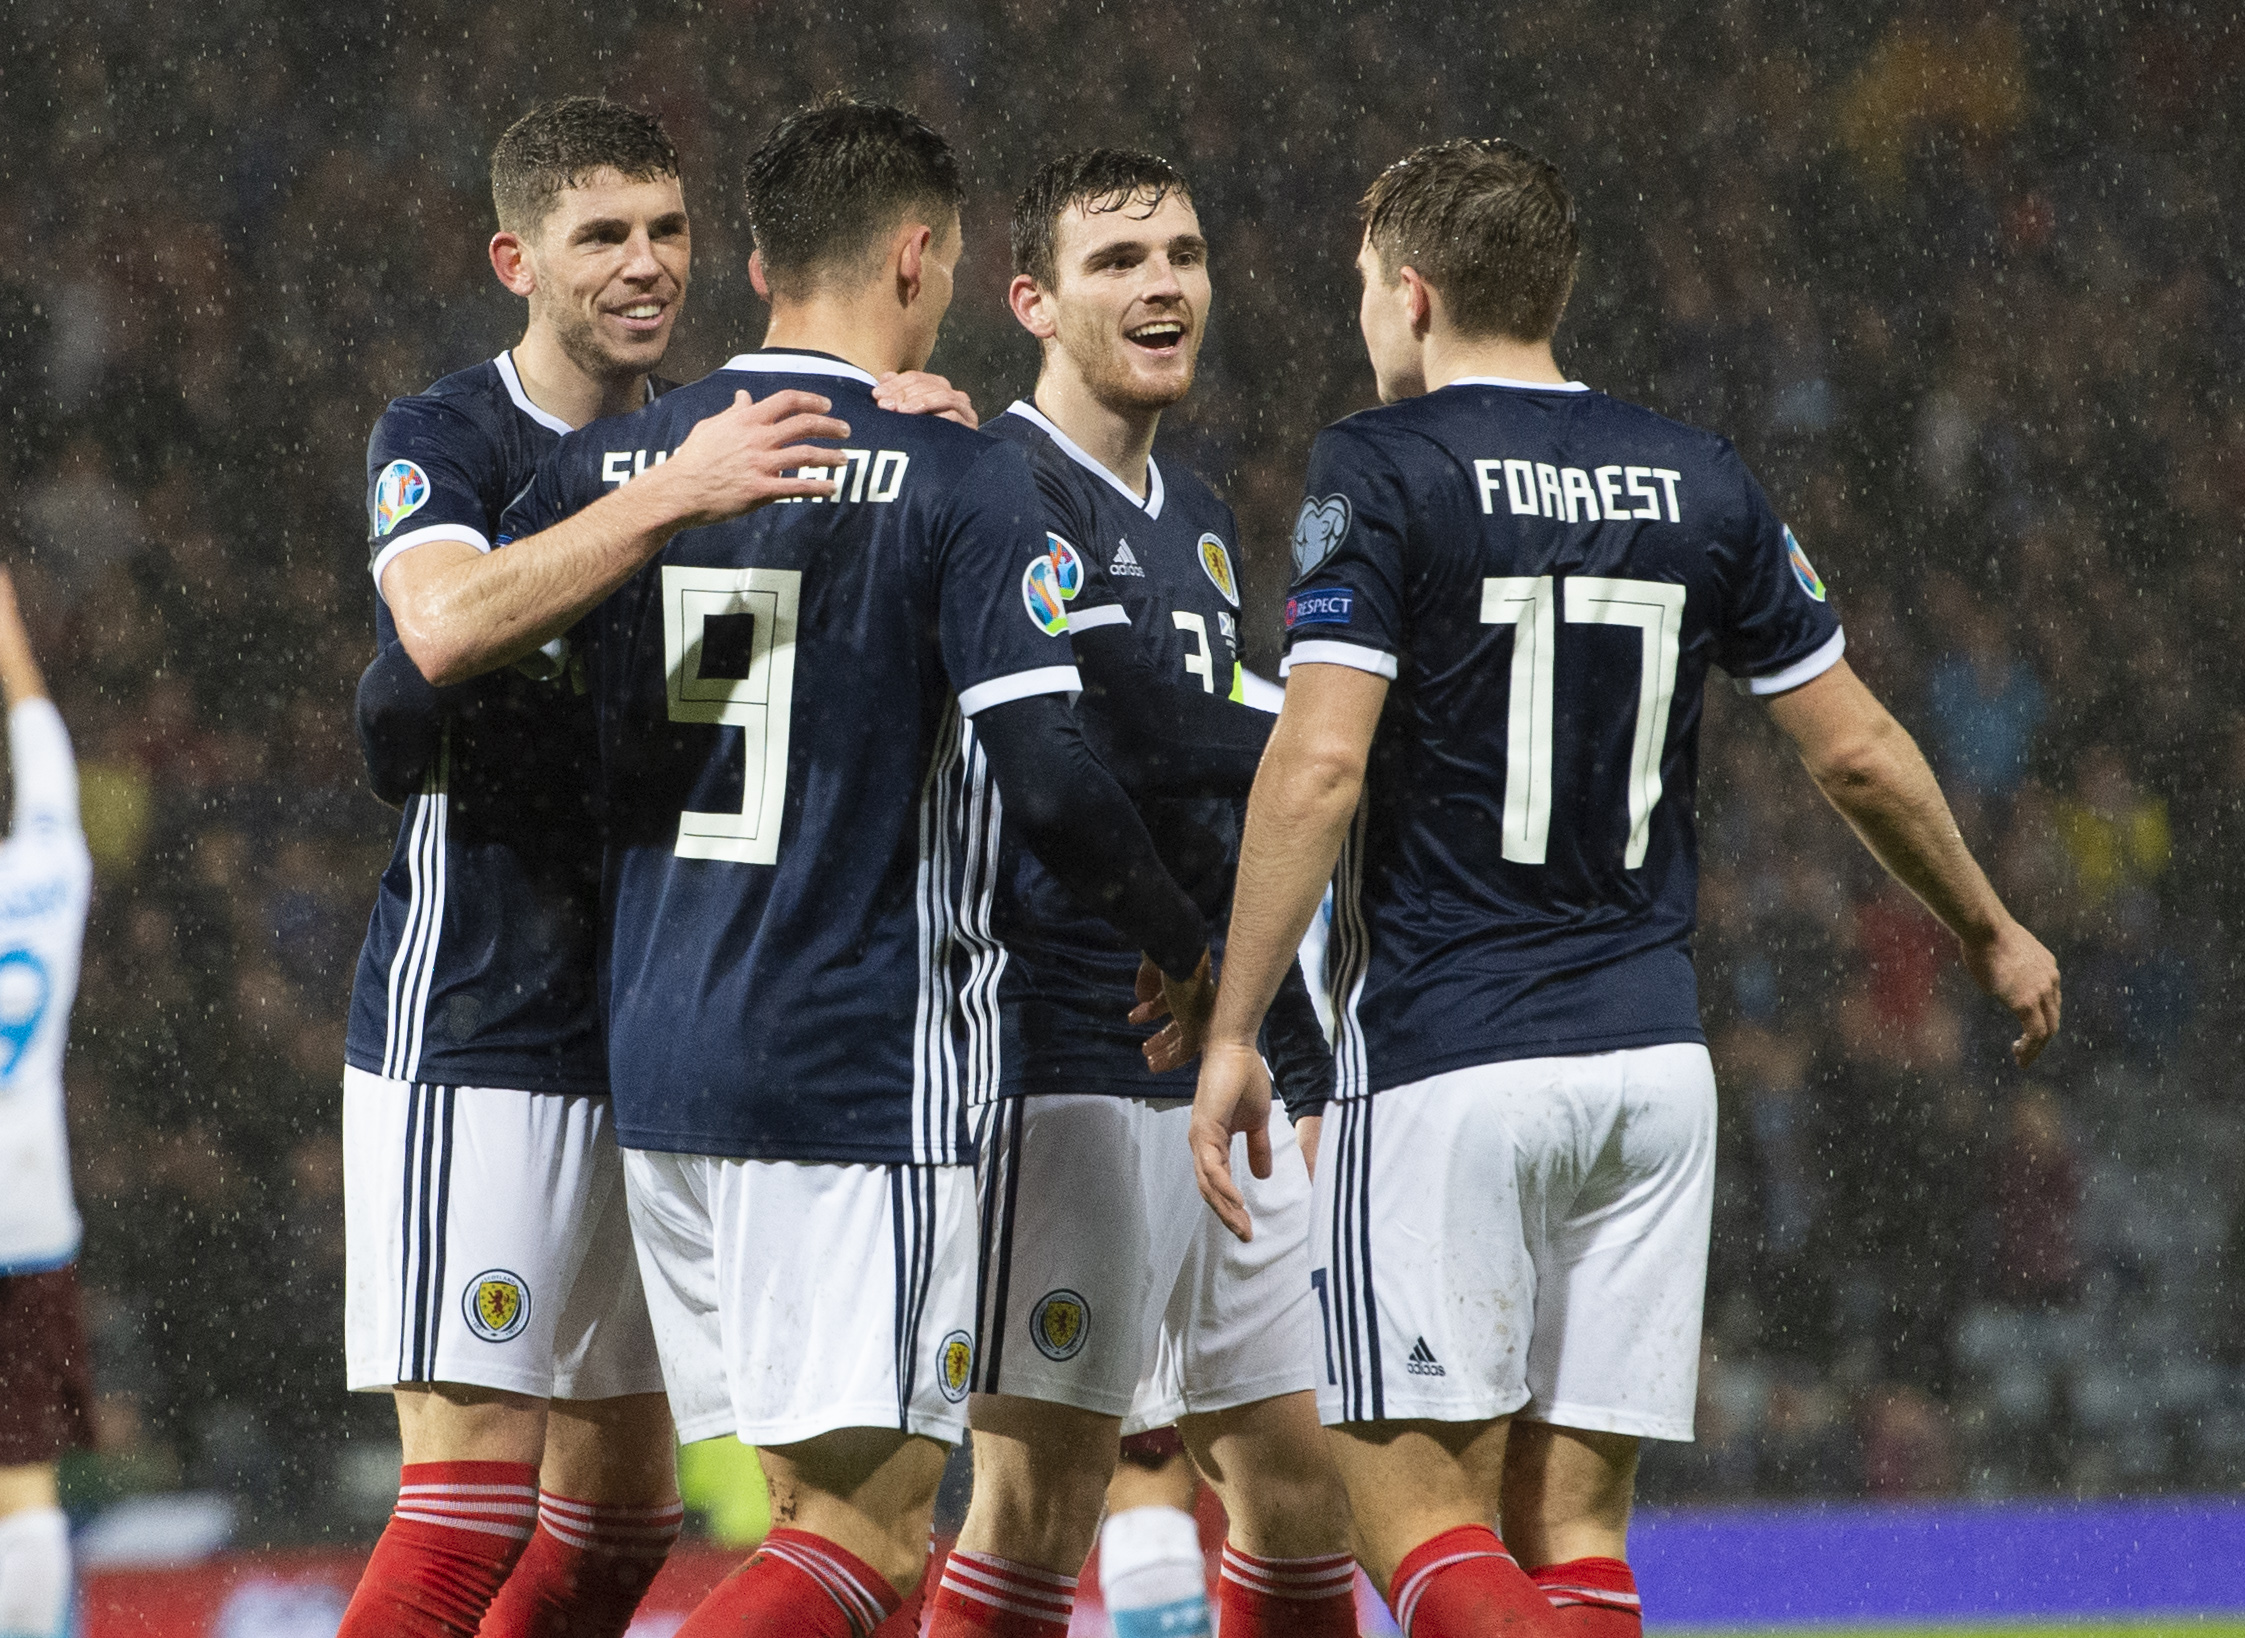 Dundee United's Lawrence Shankland celebrates his goal against San Marino with Scotland teammates Ryan Christie (left), Andy Robertson and James Forrest (right).